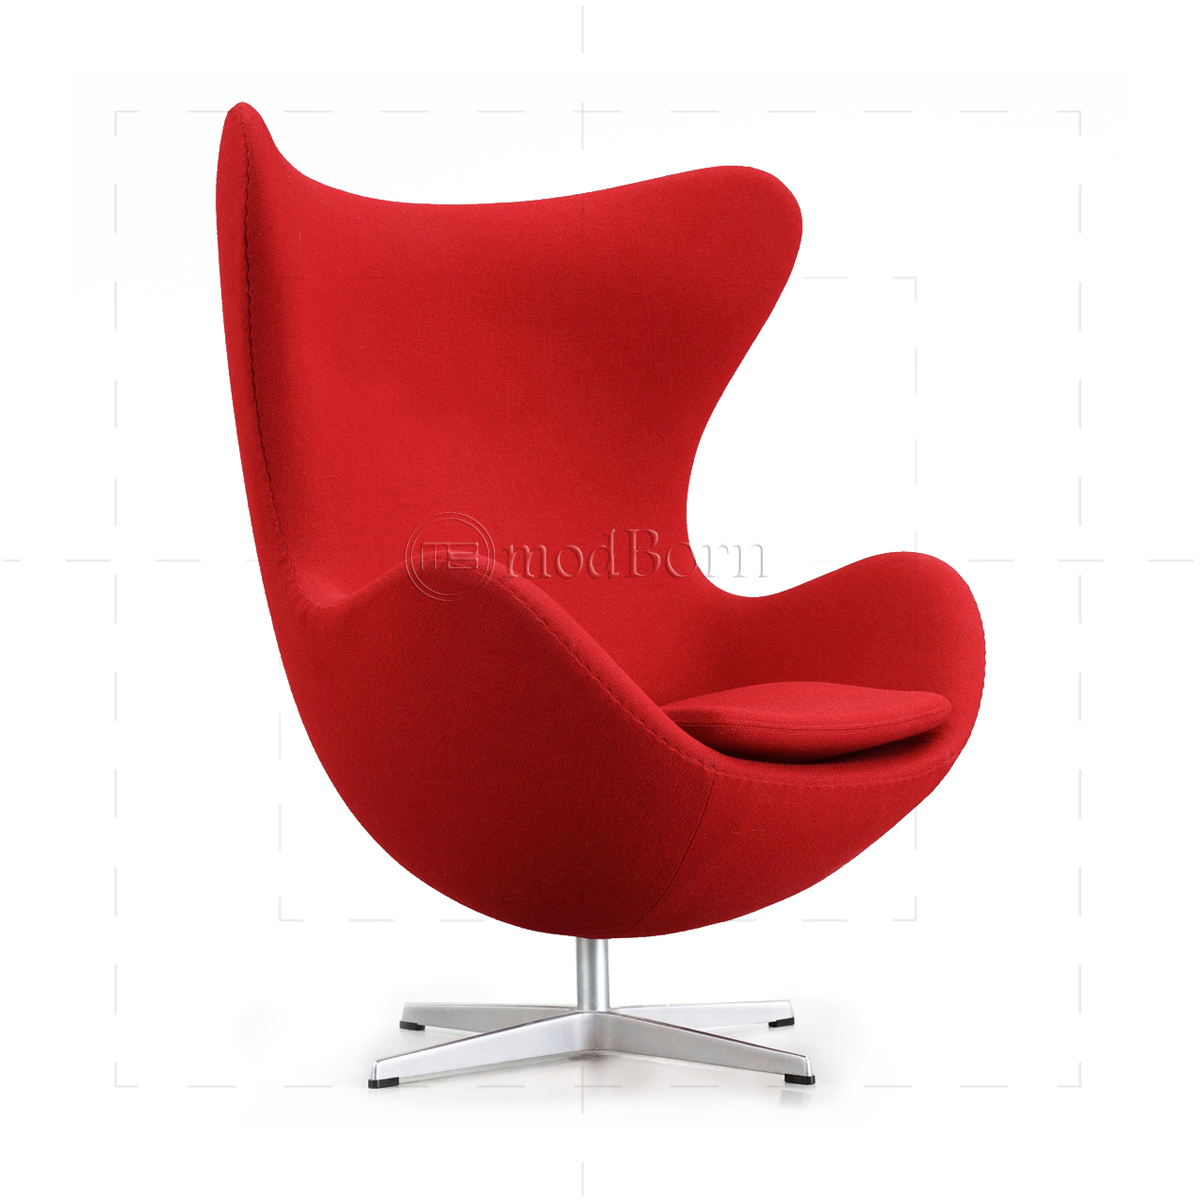 Arne Jacobsen Egg Chair Replica Arne Jacobsen Style Egg Cashmere Wool Chair Red Replica